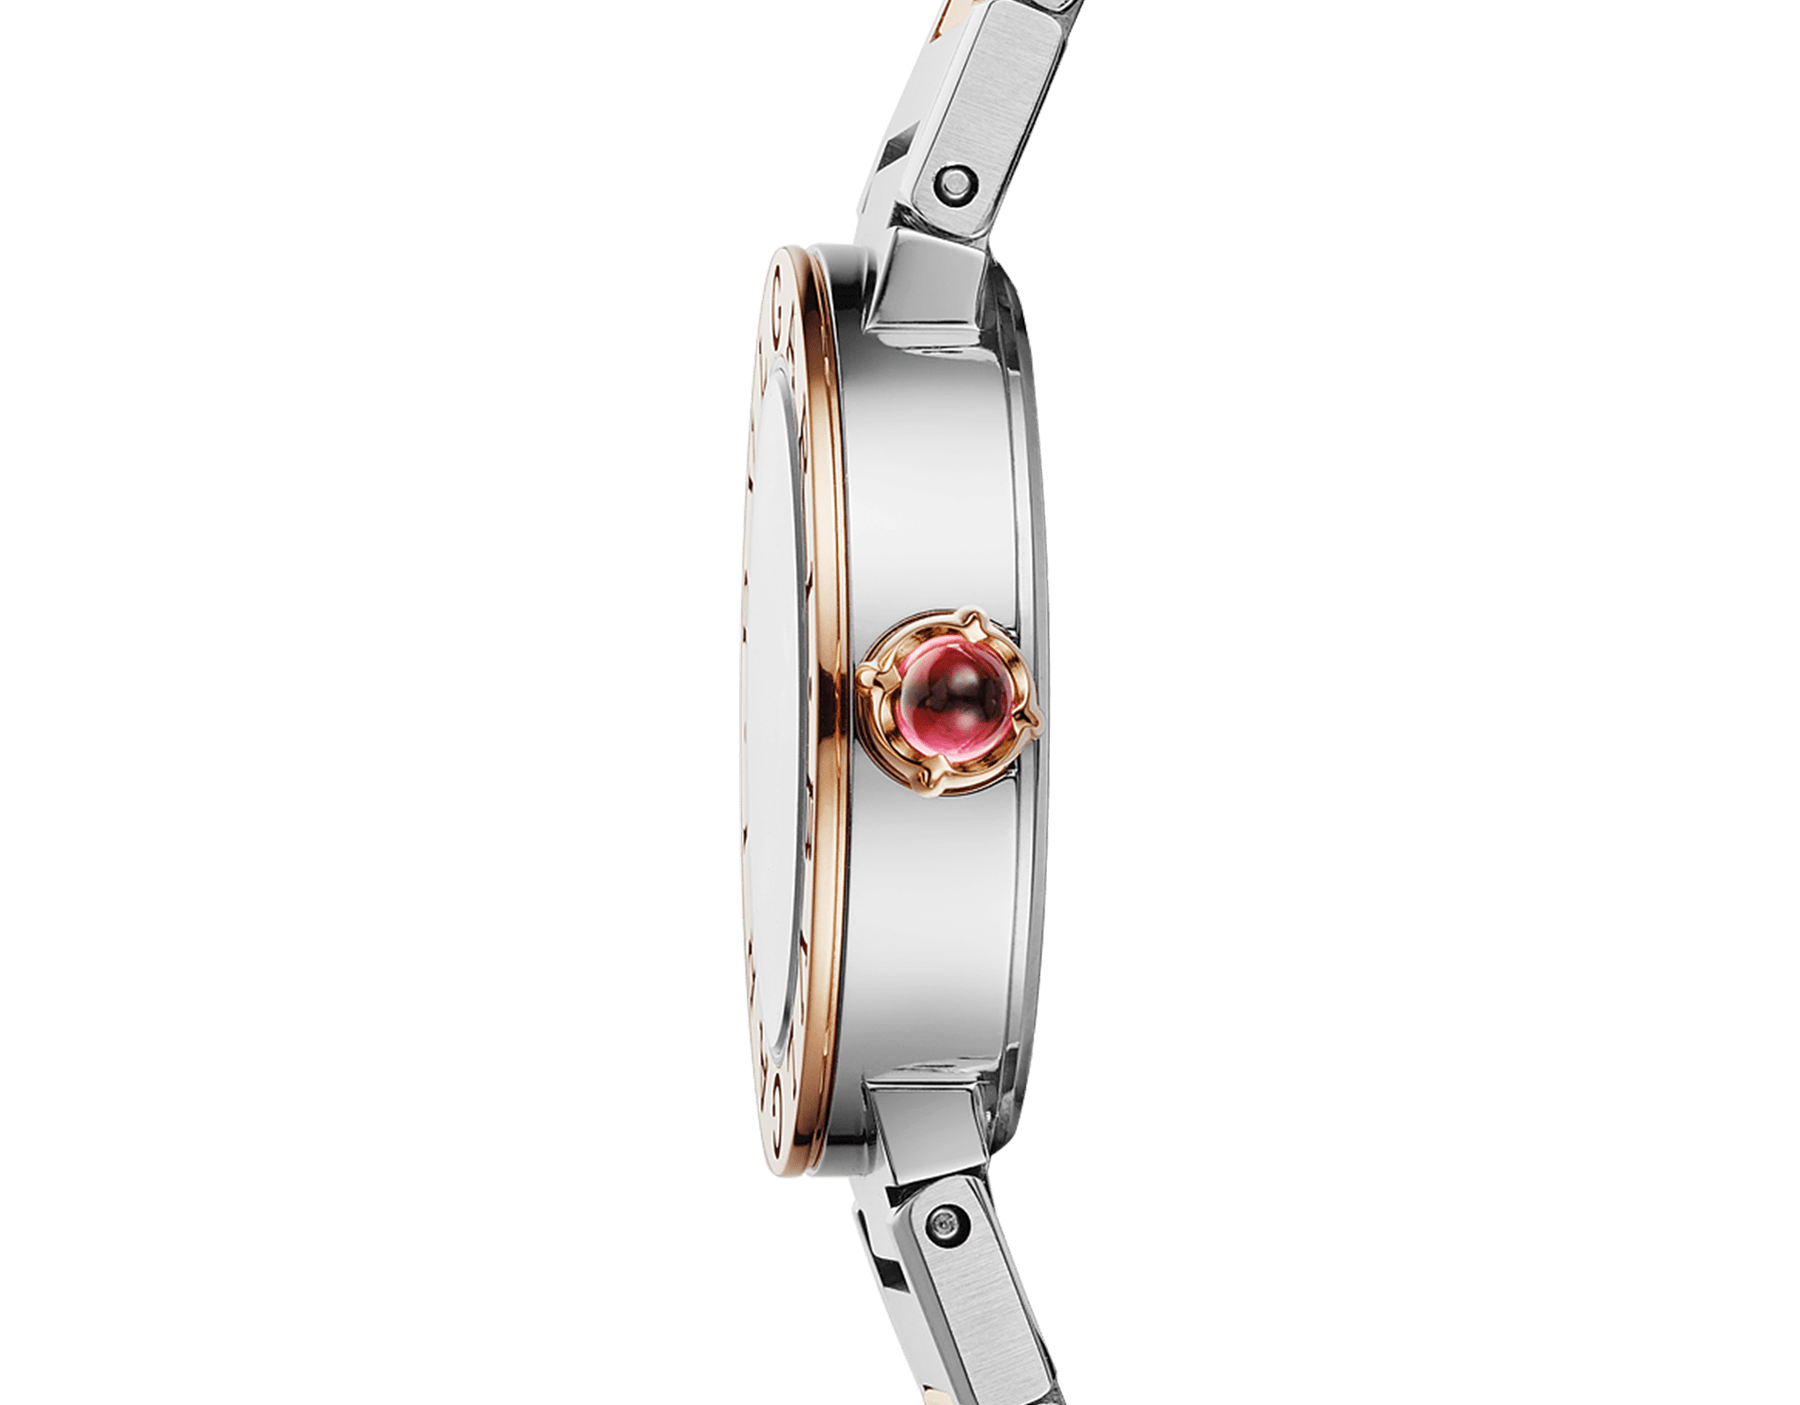 BVLGARI BVLGARI watch in 18 kt rose gold and stainless steel case and bracelet, 18 kt rose gold bezel engraved with double logo, brown satiné soleil lacquered dial and diamond indexes 103218 image 3